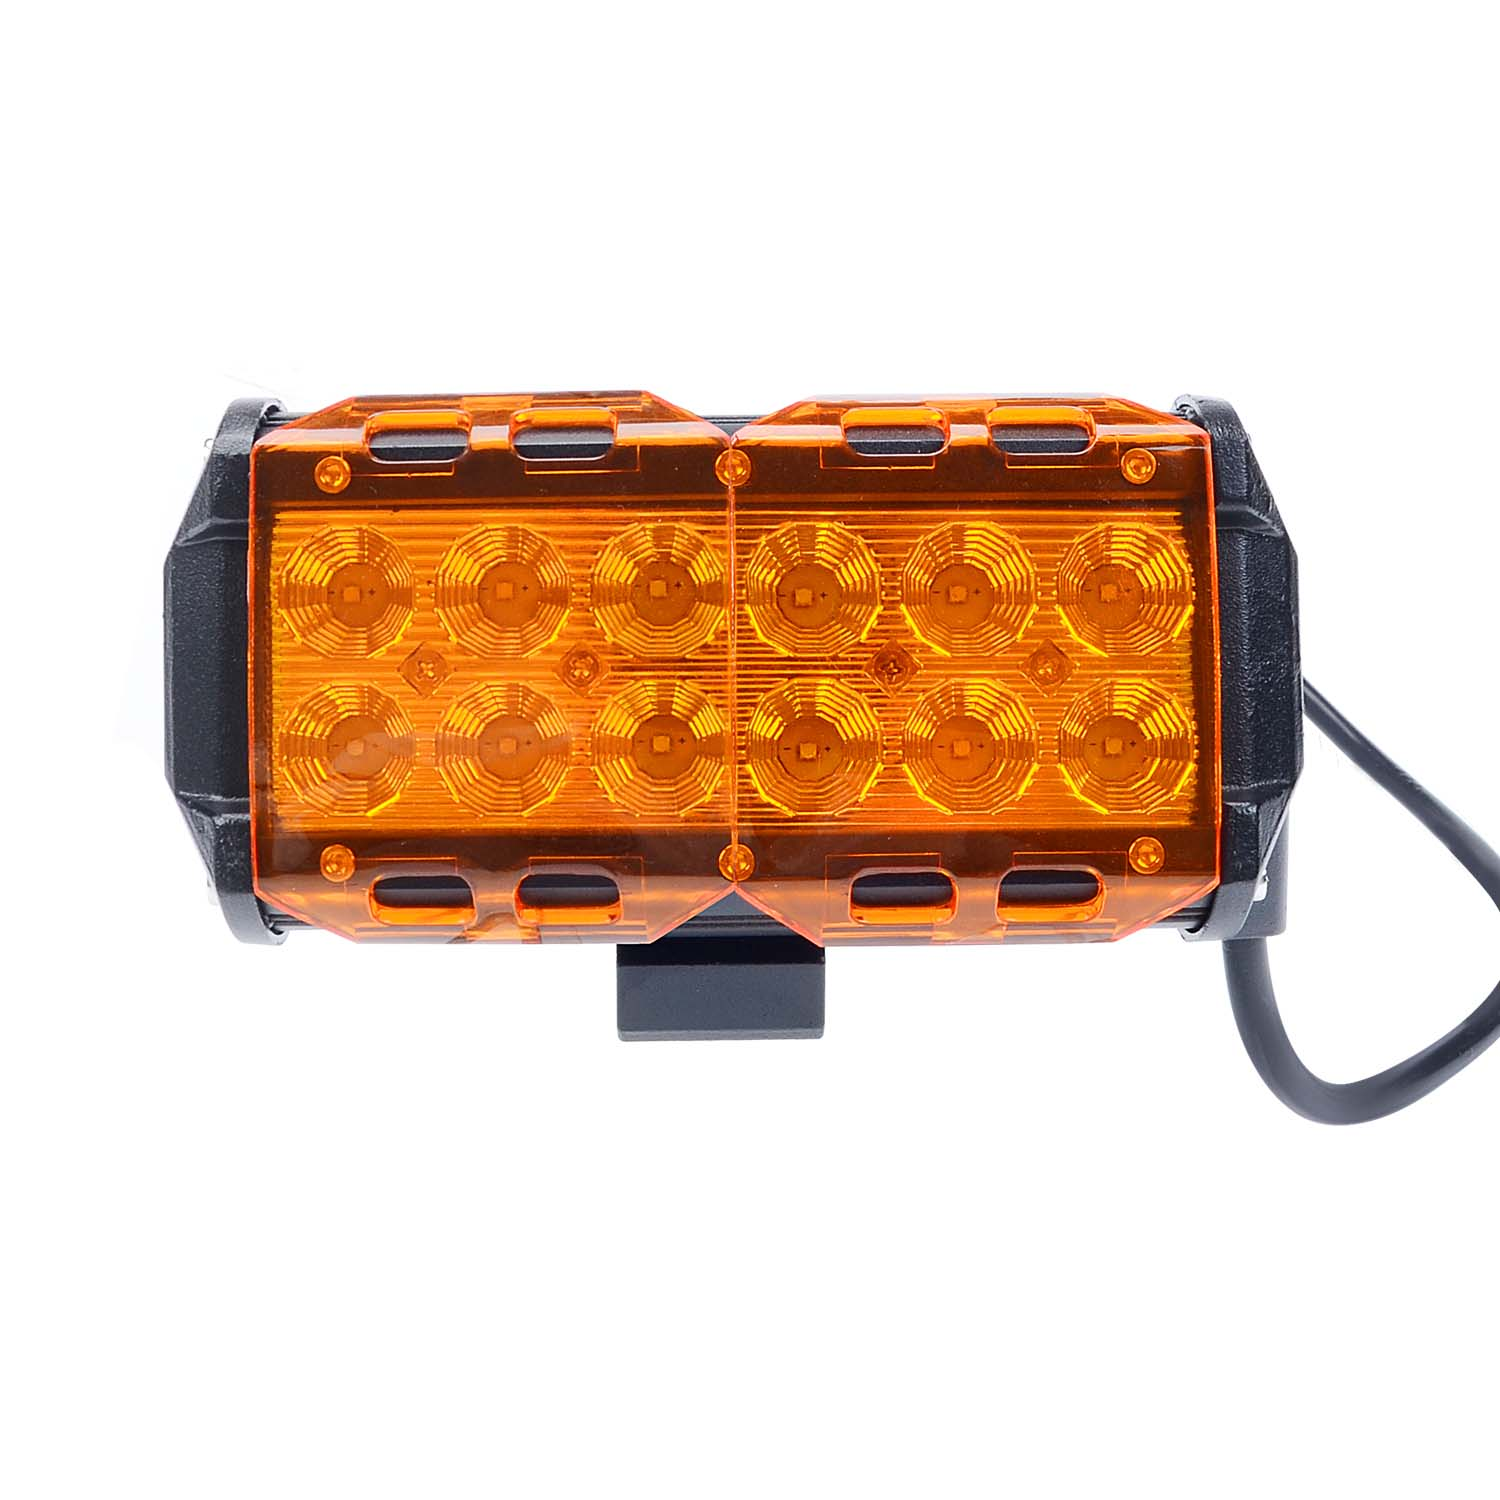 KAWELL® 18w K7-73 Series Led Light Bar Off Road Light Cover Amber Color (2 Pack)